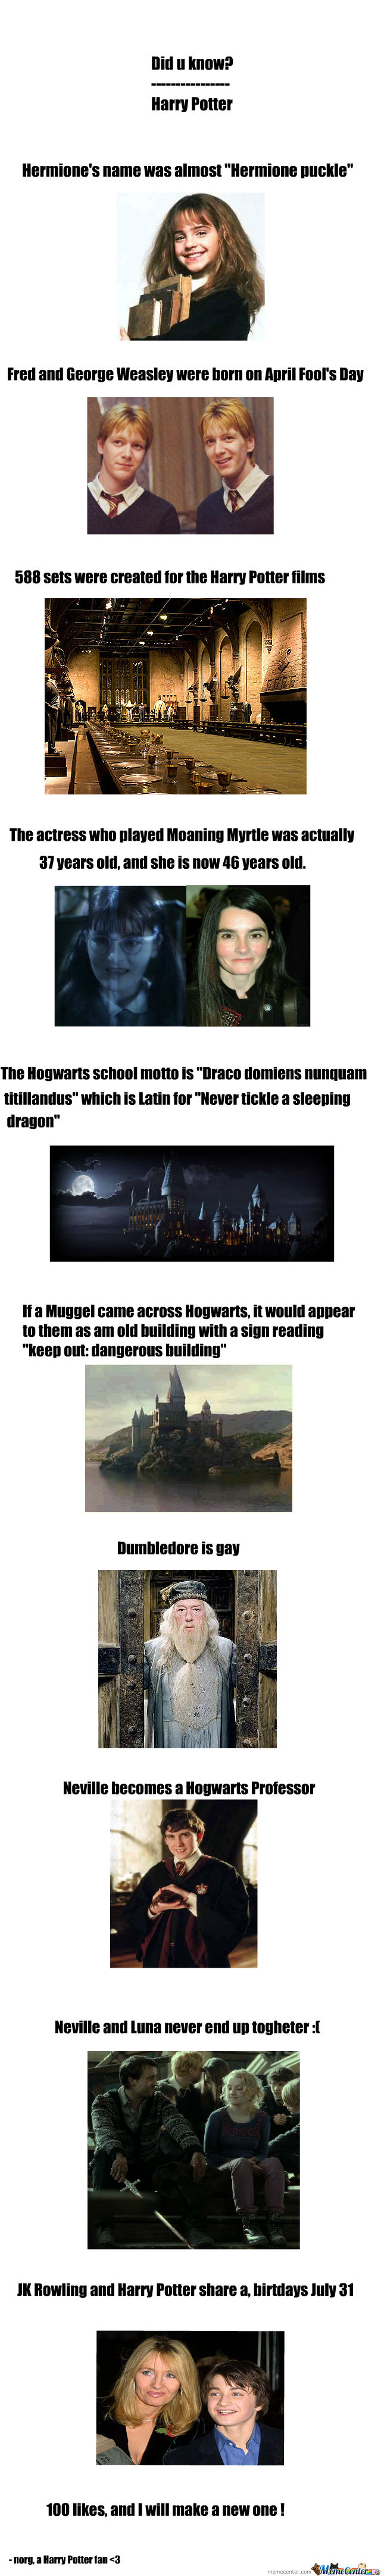 Did U Know? Harry Potter